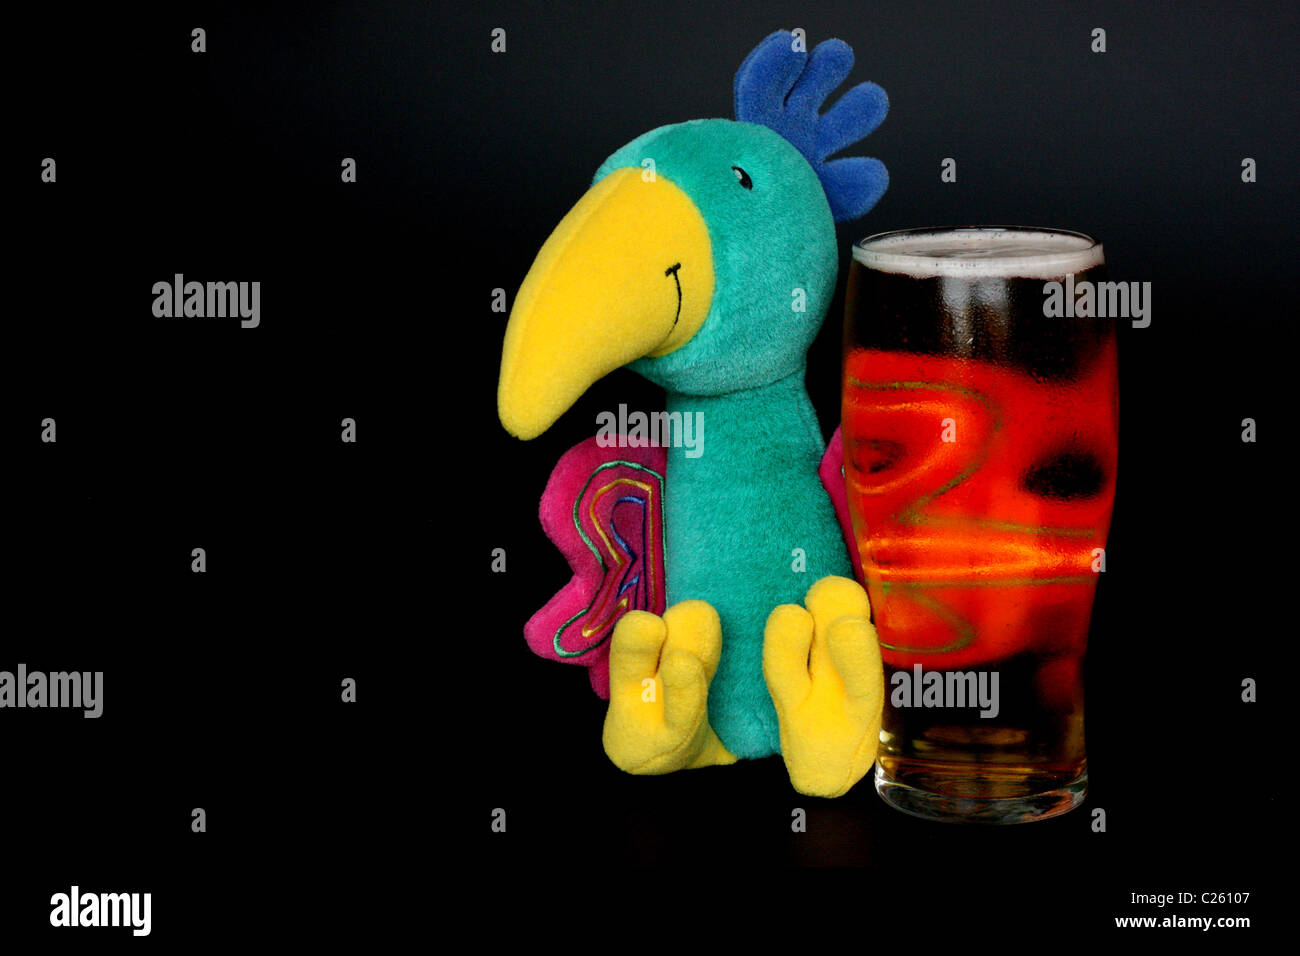 toy parrot with pint of larger - Stock Image